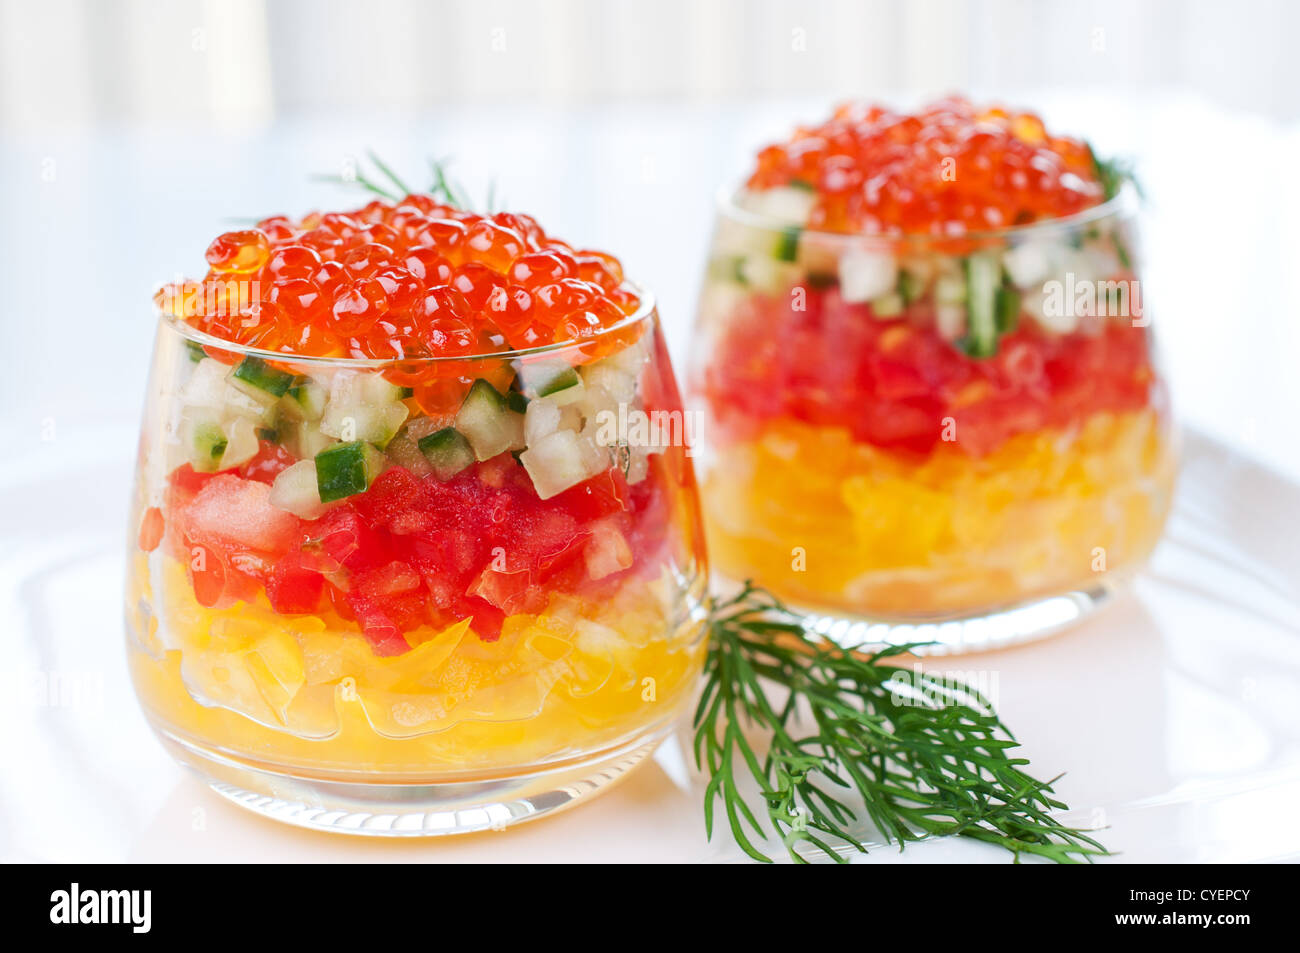 Caviar with vegetable salad decorated sprig of dill on plate - Stock Image